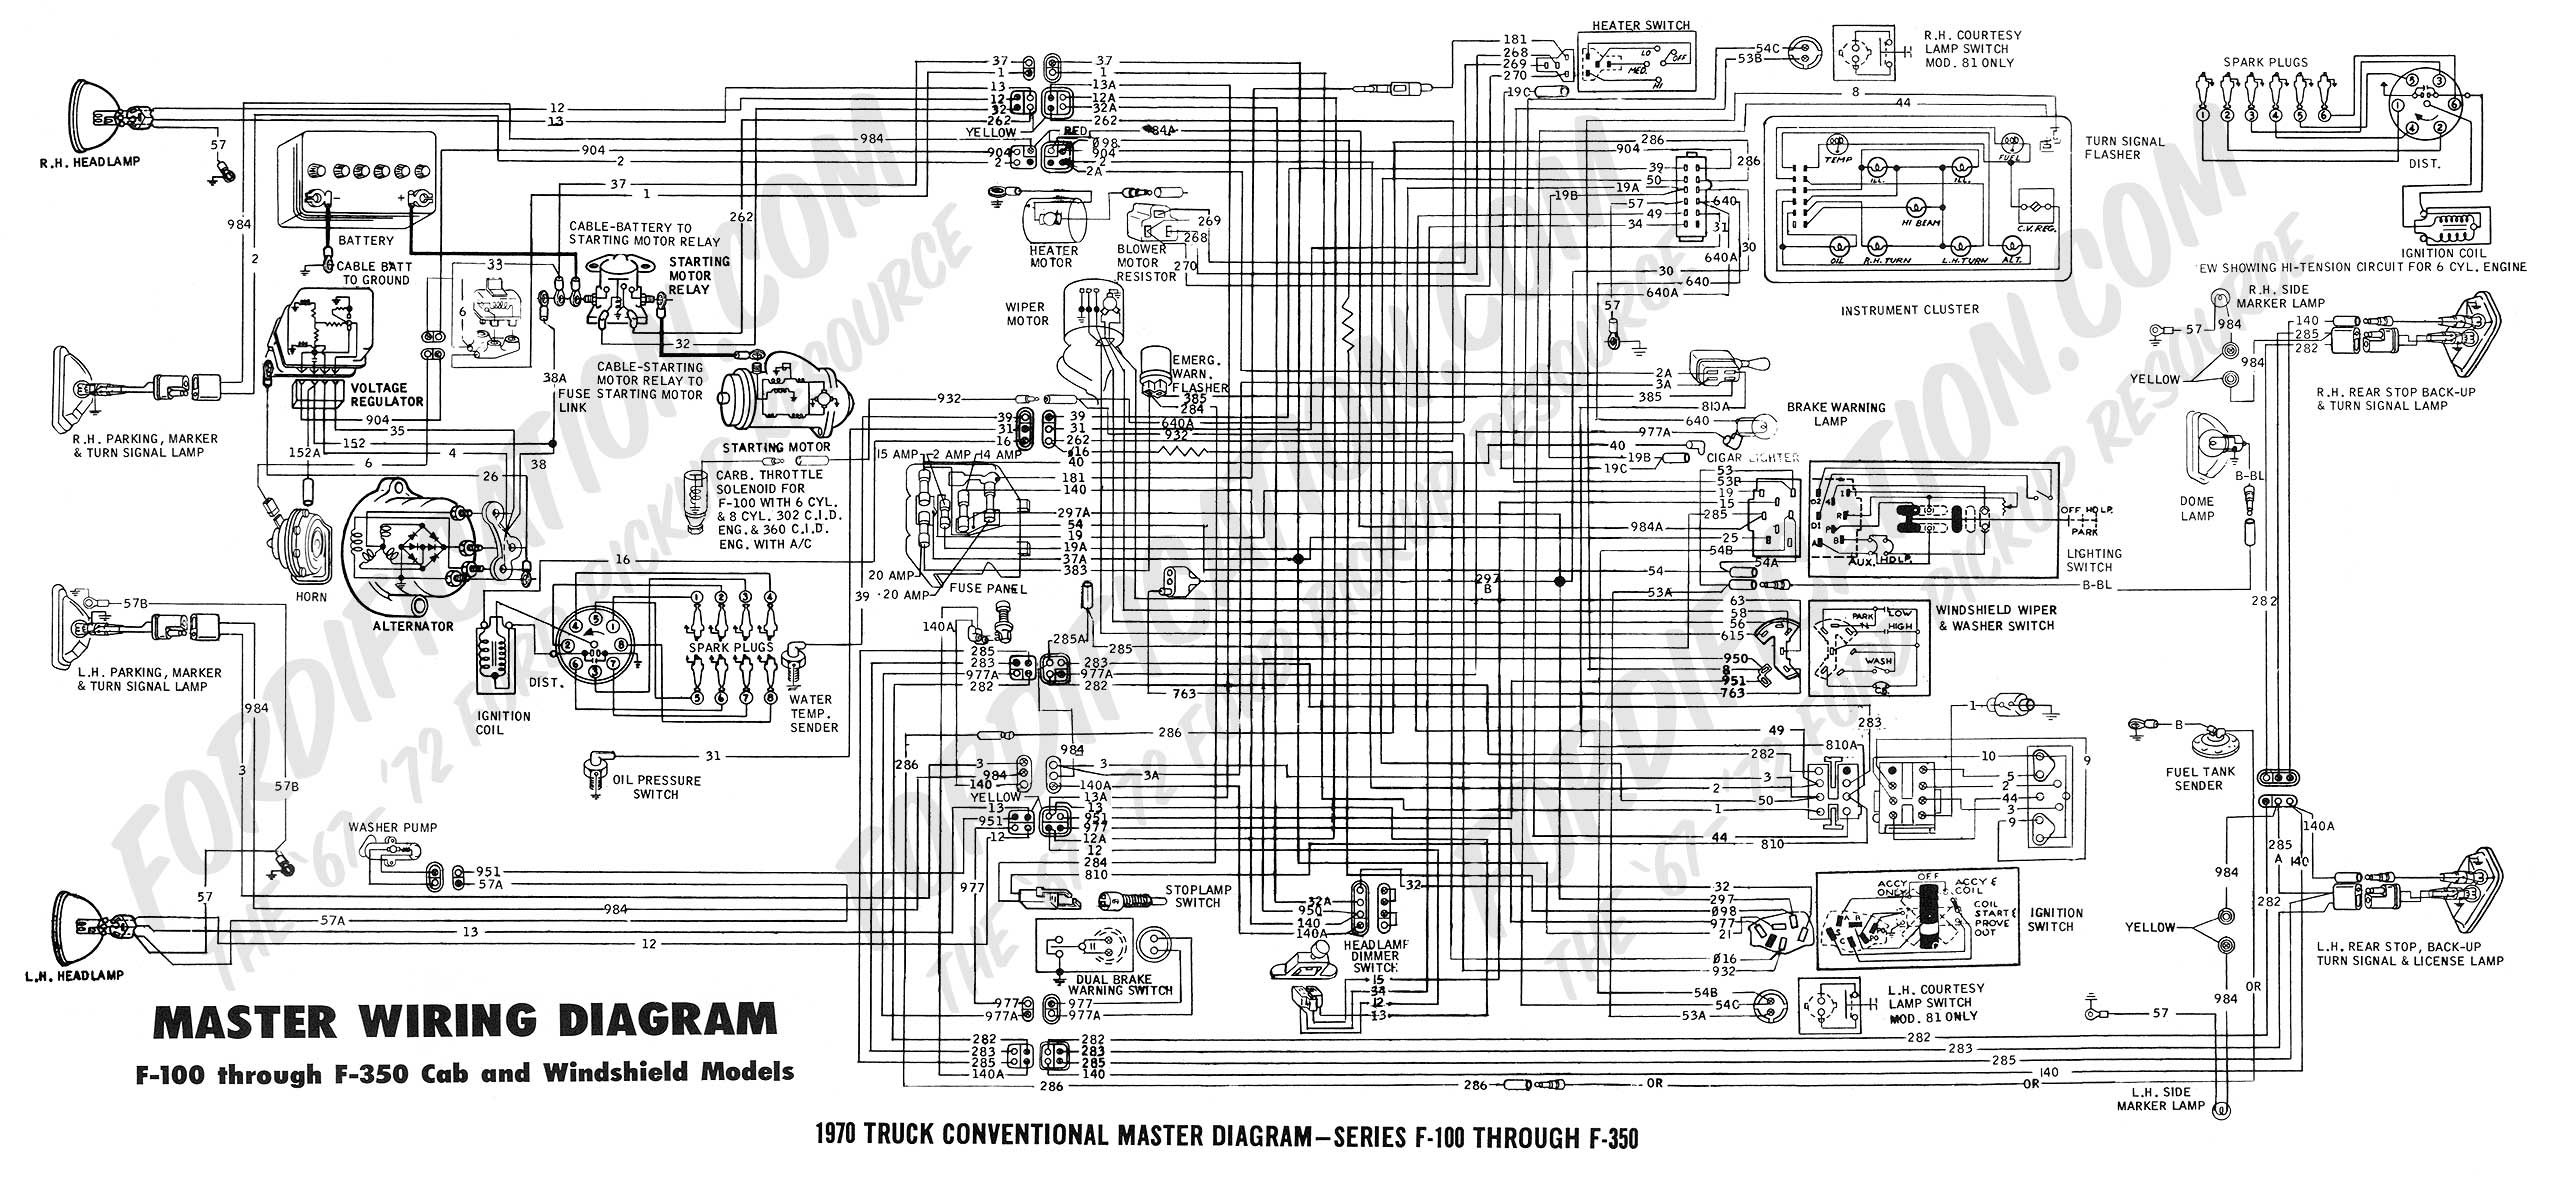 1970 Ford Wiring Schematic Diagrams Scematic 2000 Vw Beetle Starter Diagram Ignition Todays Tractor